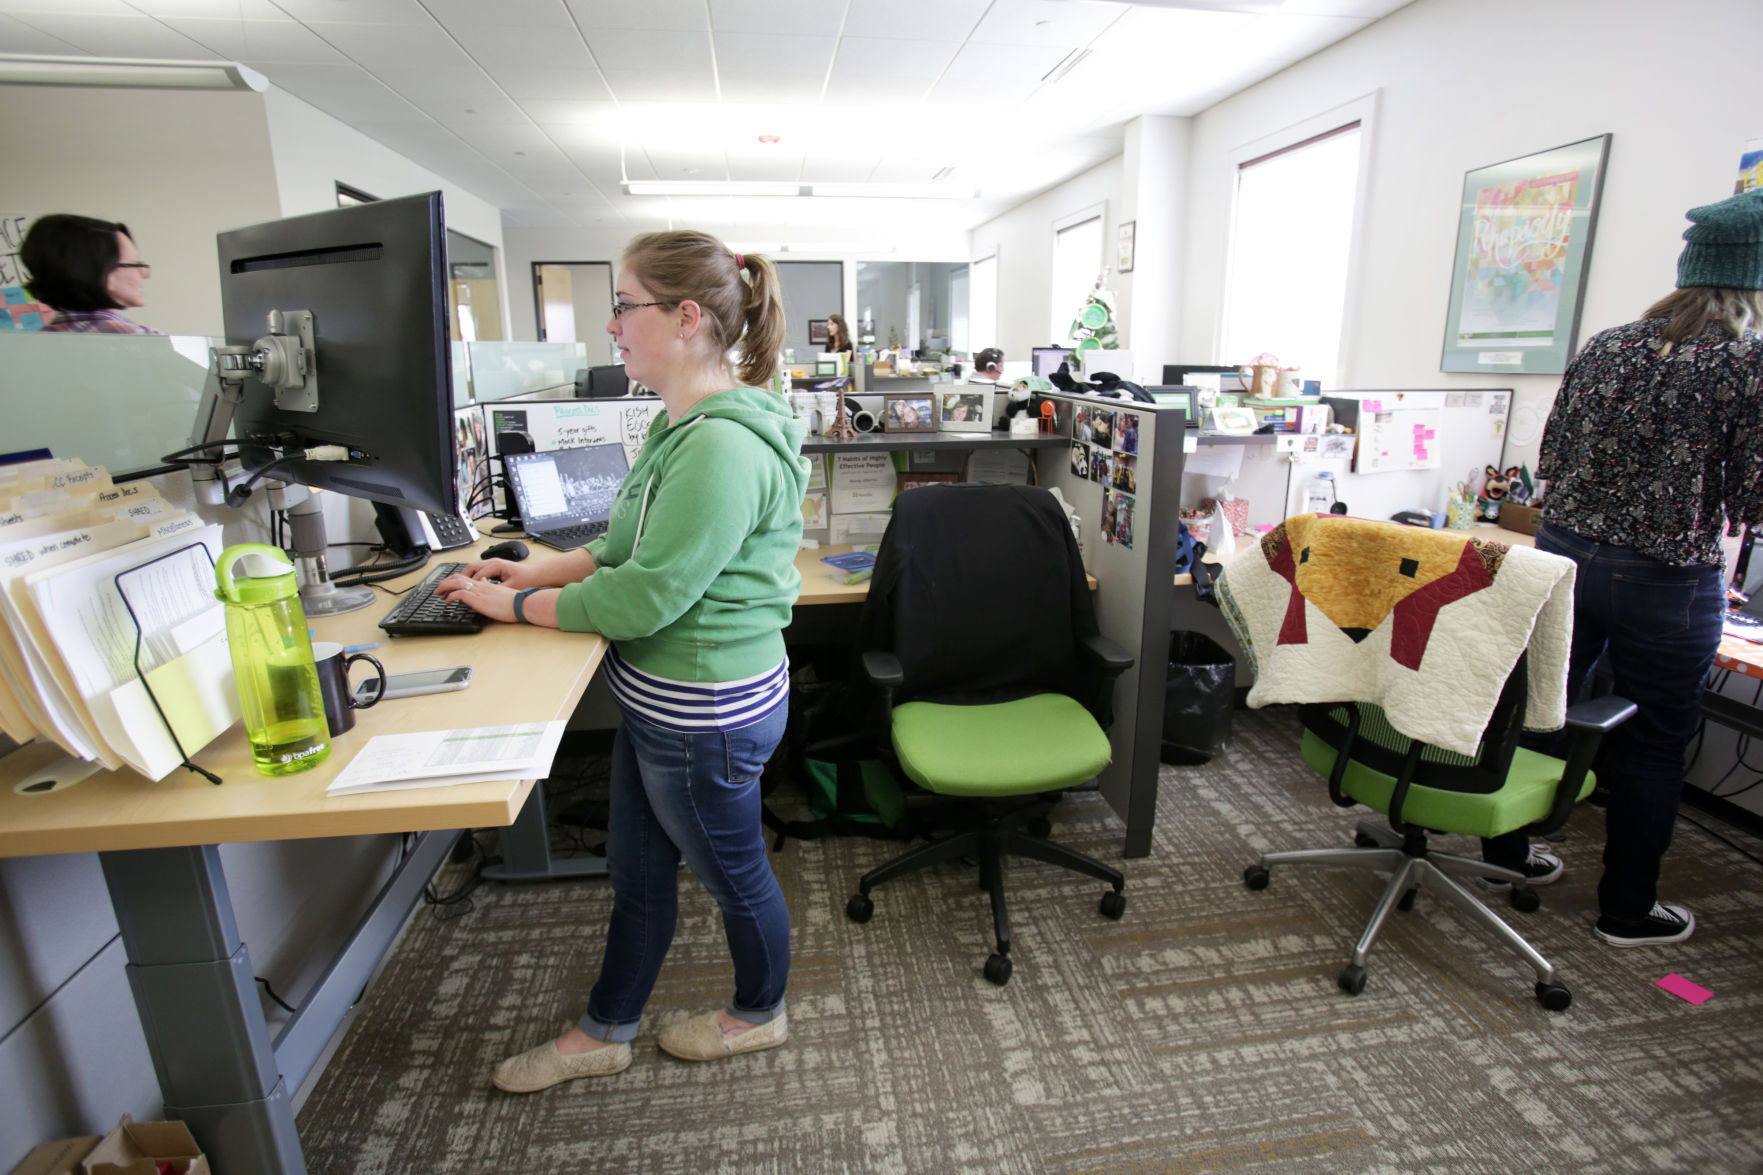 Madison shows great momentum in tech job growth Brookings analyst